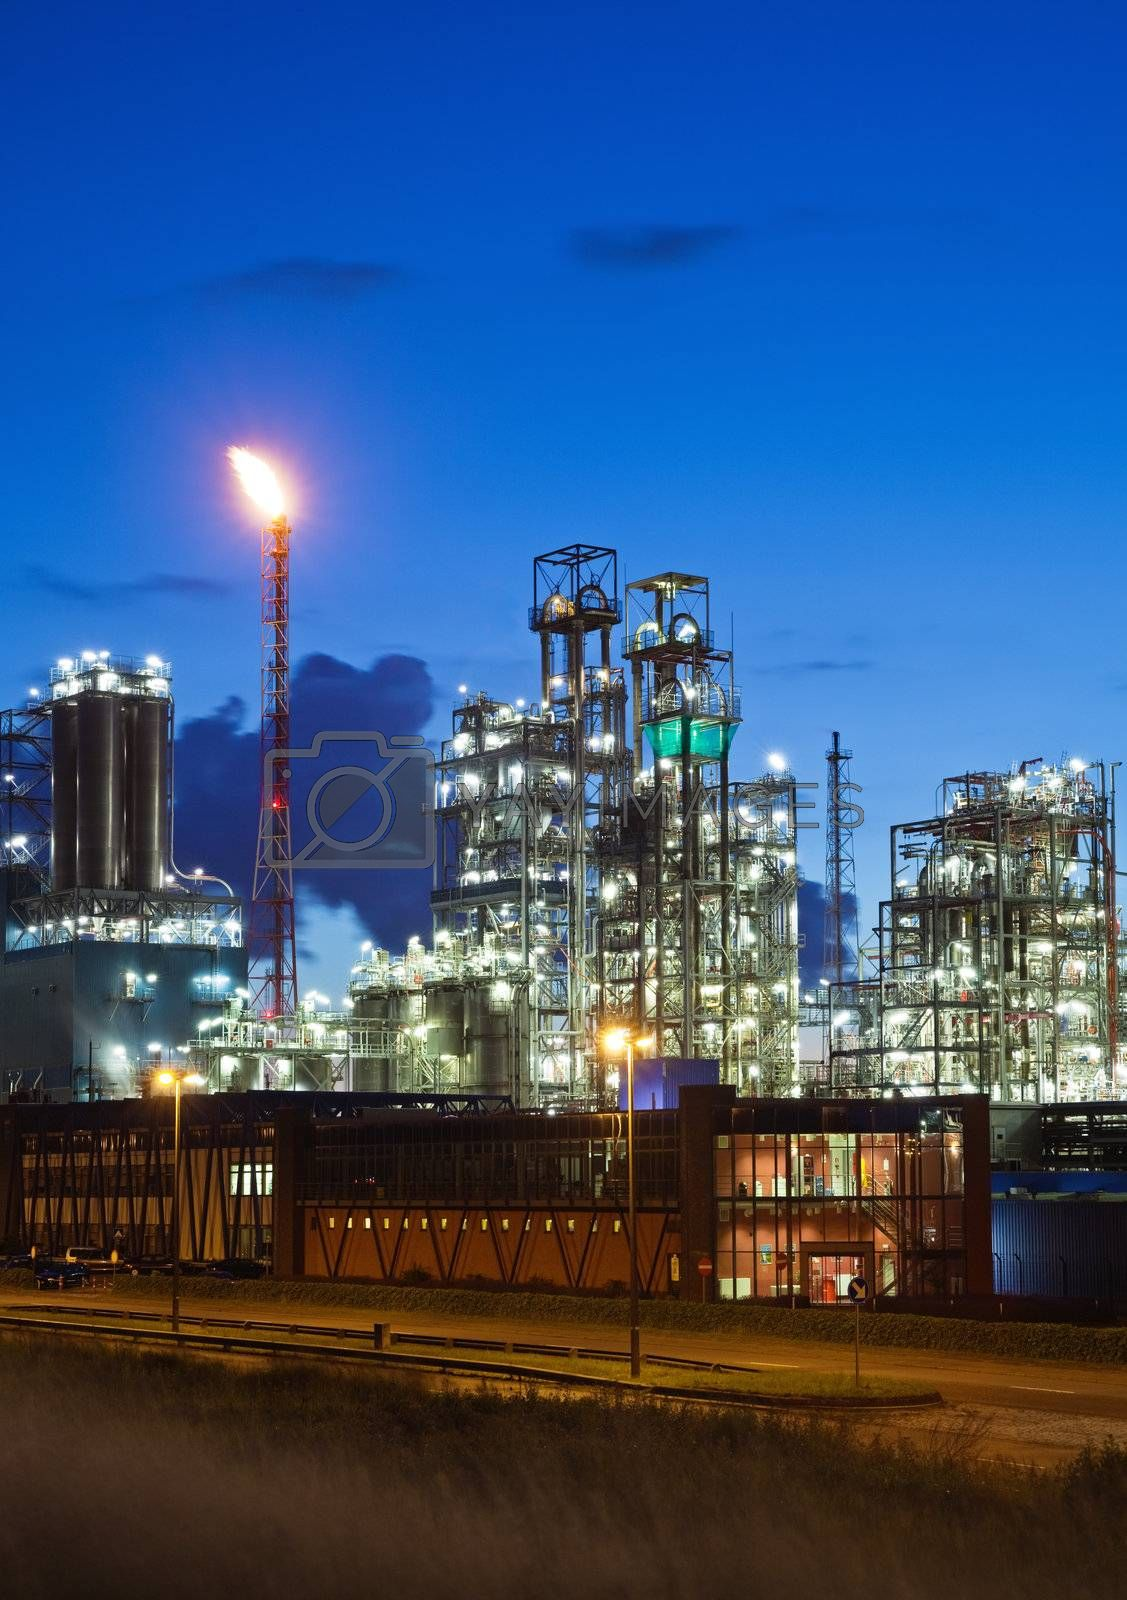 Illuminated petrochemical plant in twilight (Antwerp port, Belgium)